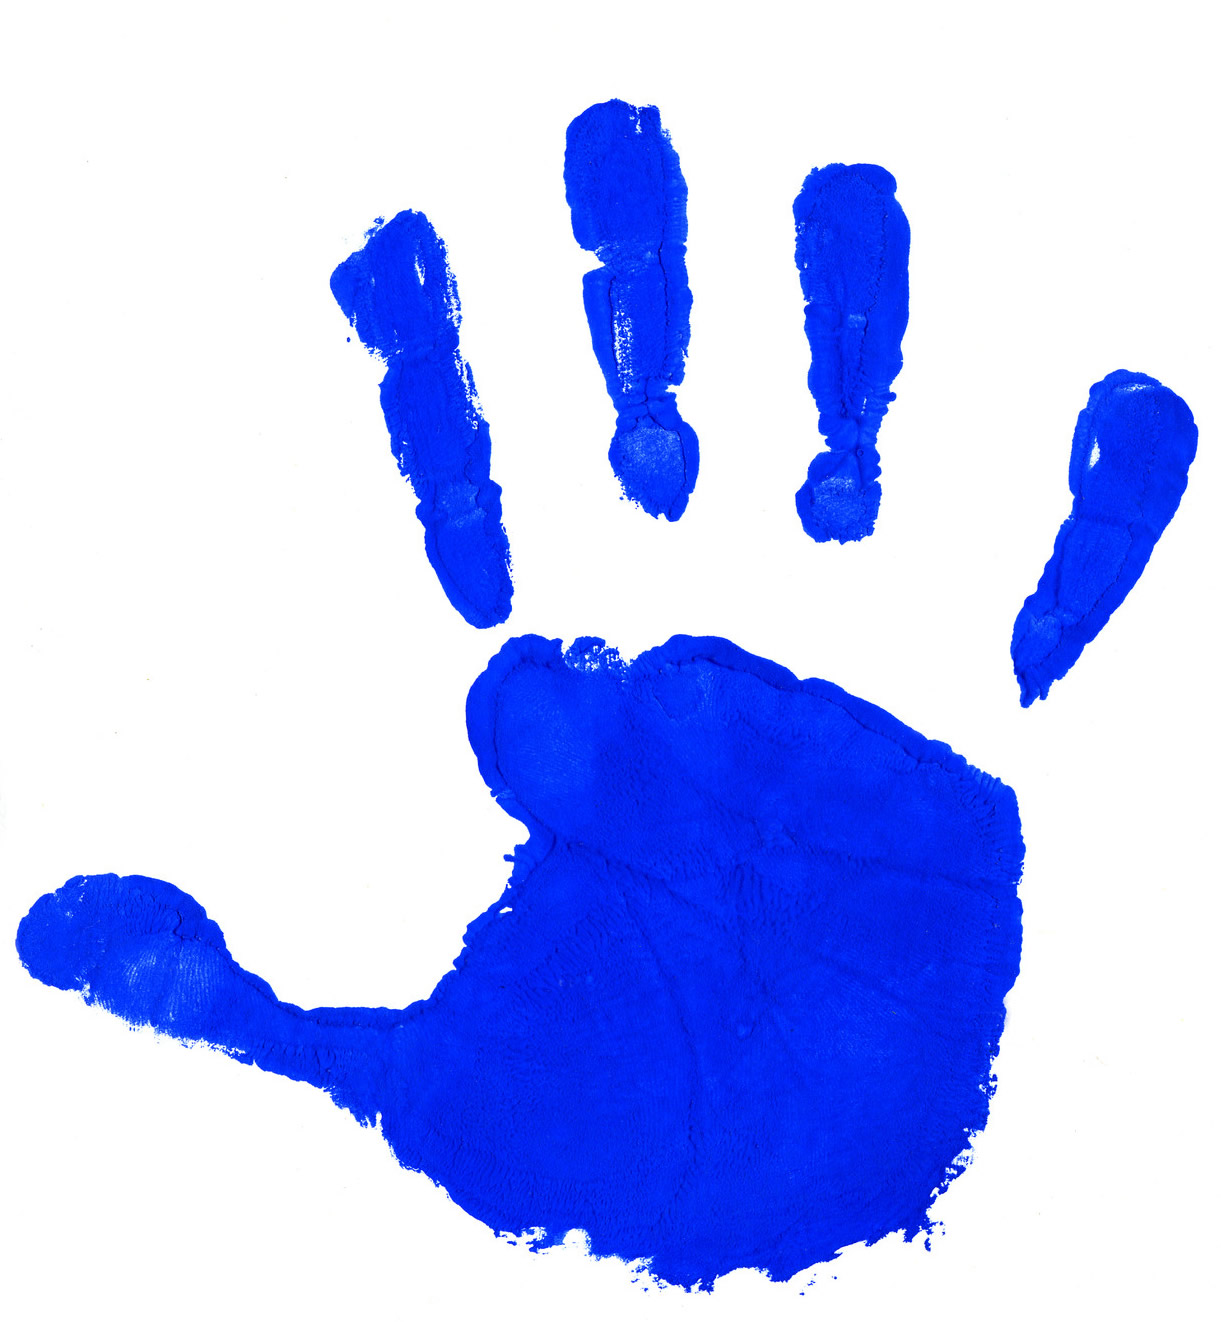 Free baby cliparts download. Handprint clipart child's